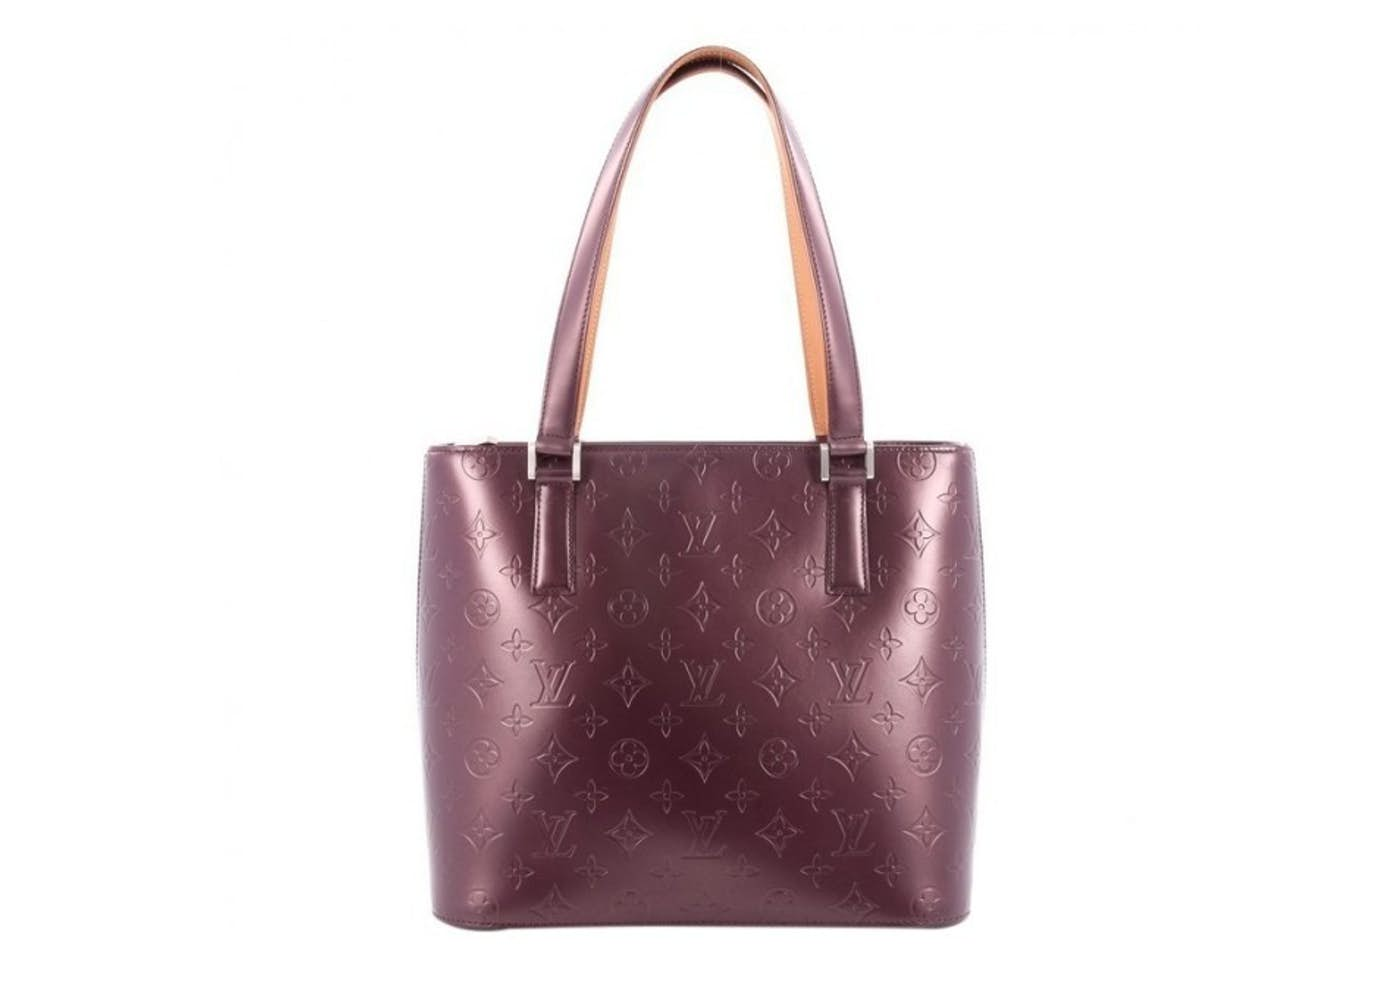 louis vuitton tote stockton monogram vernis mat maroon. Black Bedroom Furniture Sets. Home Design Ideas